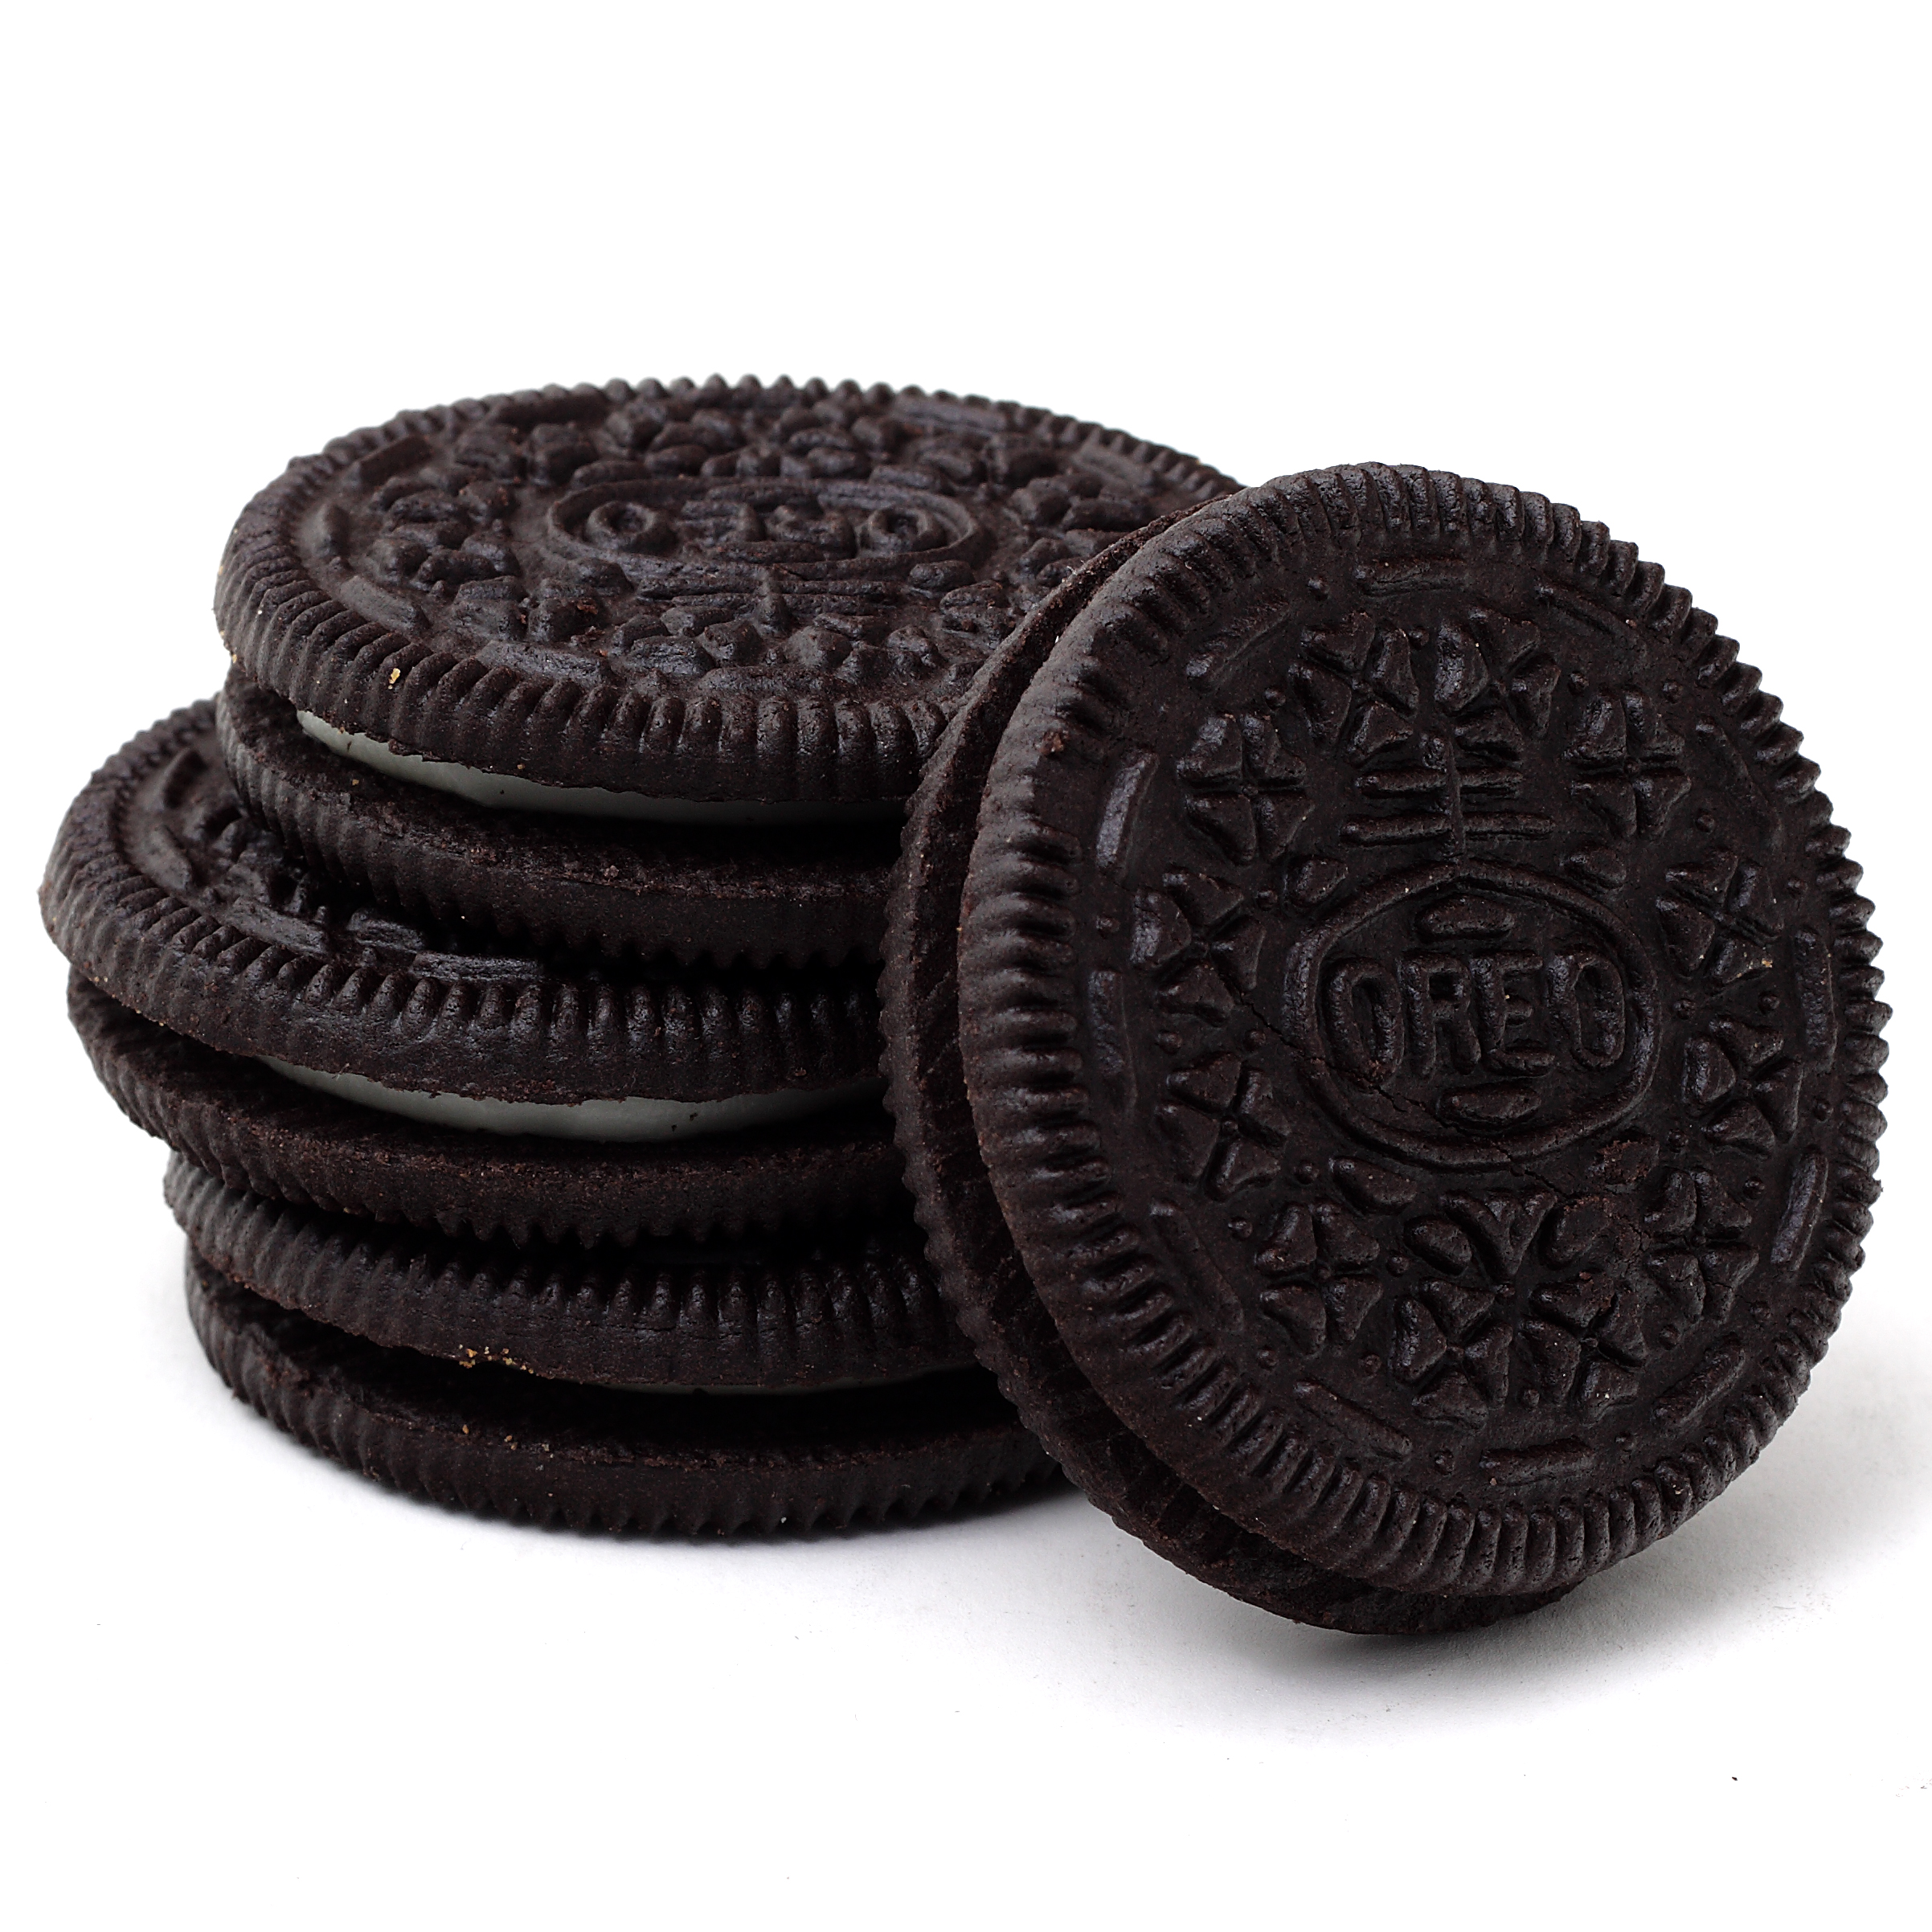 Oreo clipart chocolate biscuit Like? Cupcake Filled Taste People